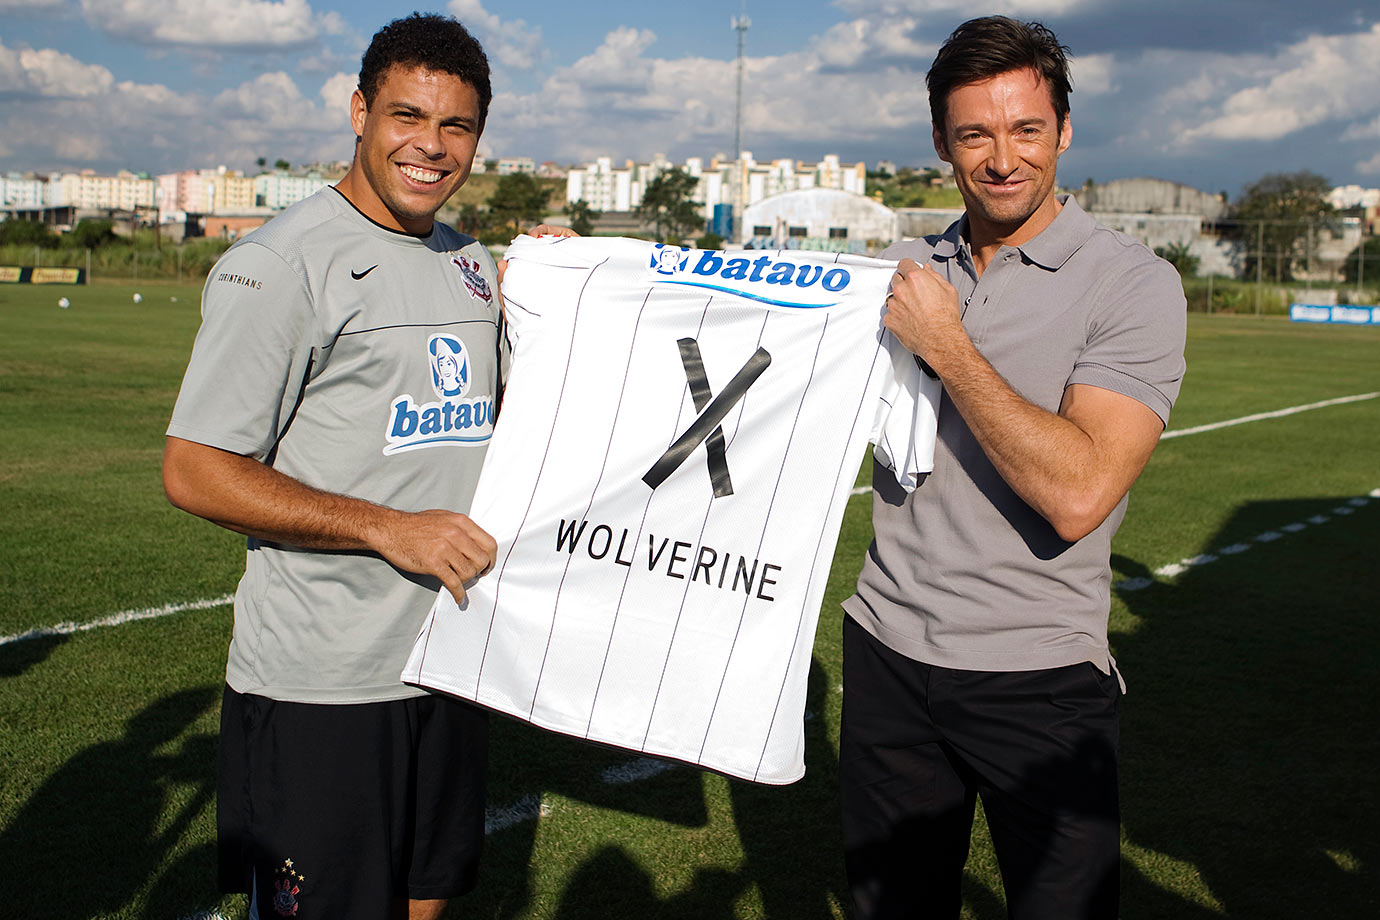 Ronaldo presents Hugh Jackman with a Corinthians jersey embroidered with the name Wolverine and the number 'X' to promote Jackman's movie 'X-Men Origins: Wolverine.'